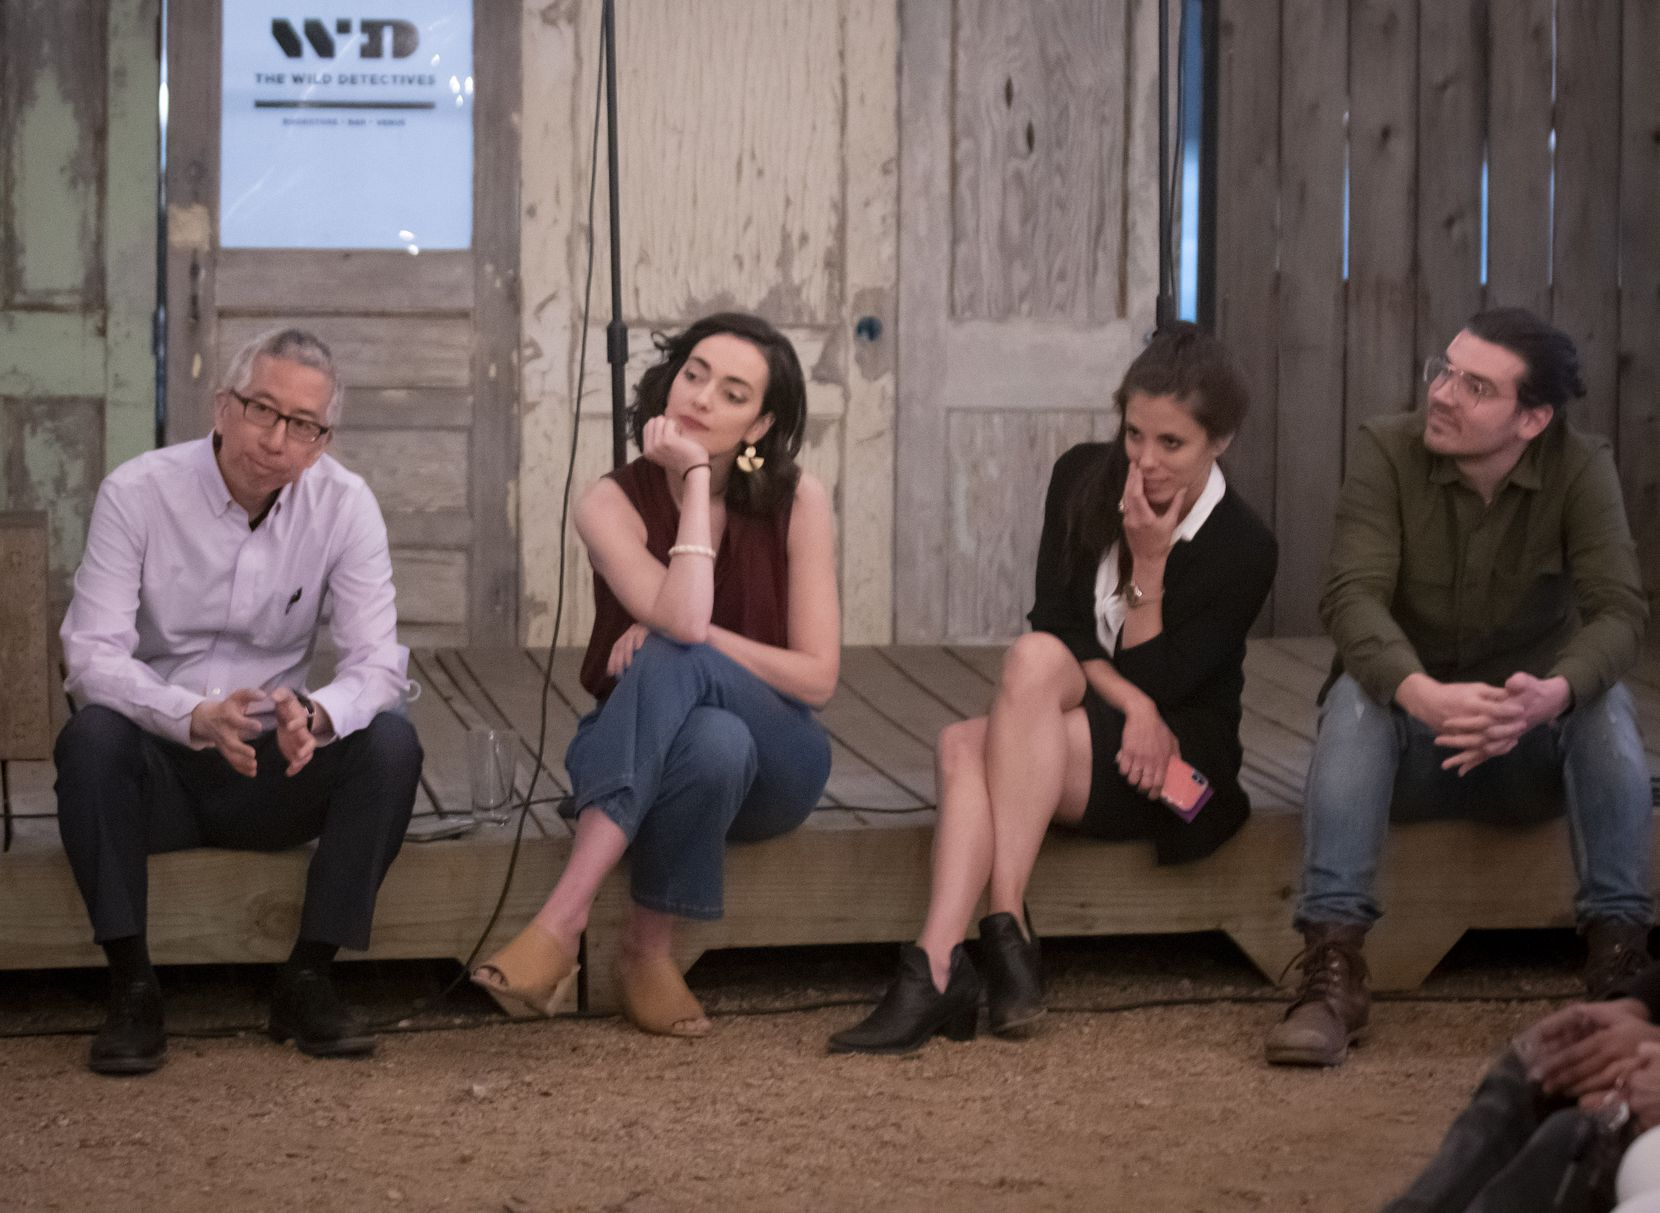 Tom Huang (left) of The Dallas Morning News, listens to audience feedback alongside playwright Janielle Kastner, SMU journalism professor Lauren Smart and playwright Brigham Mosley after the workshopping of a play about the newspaper at The Wild Detectives on March 21, 2019.